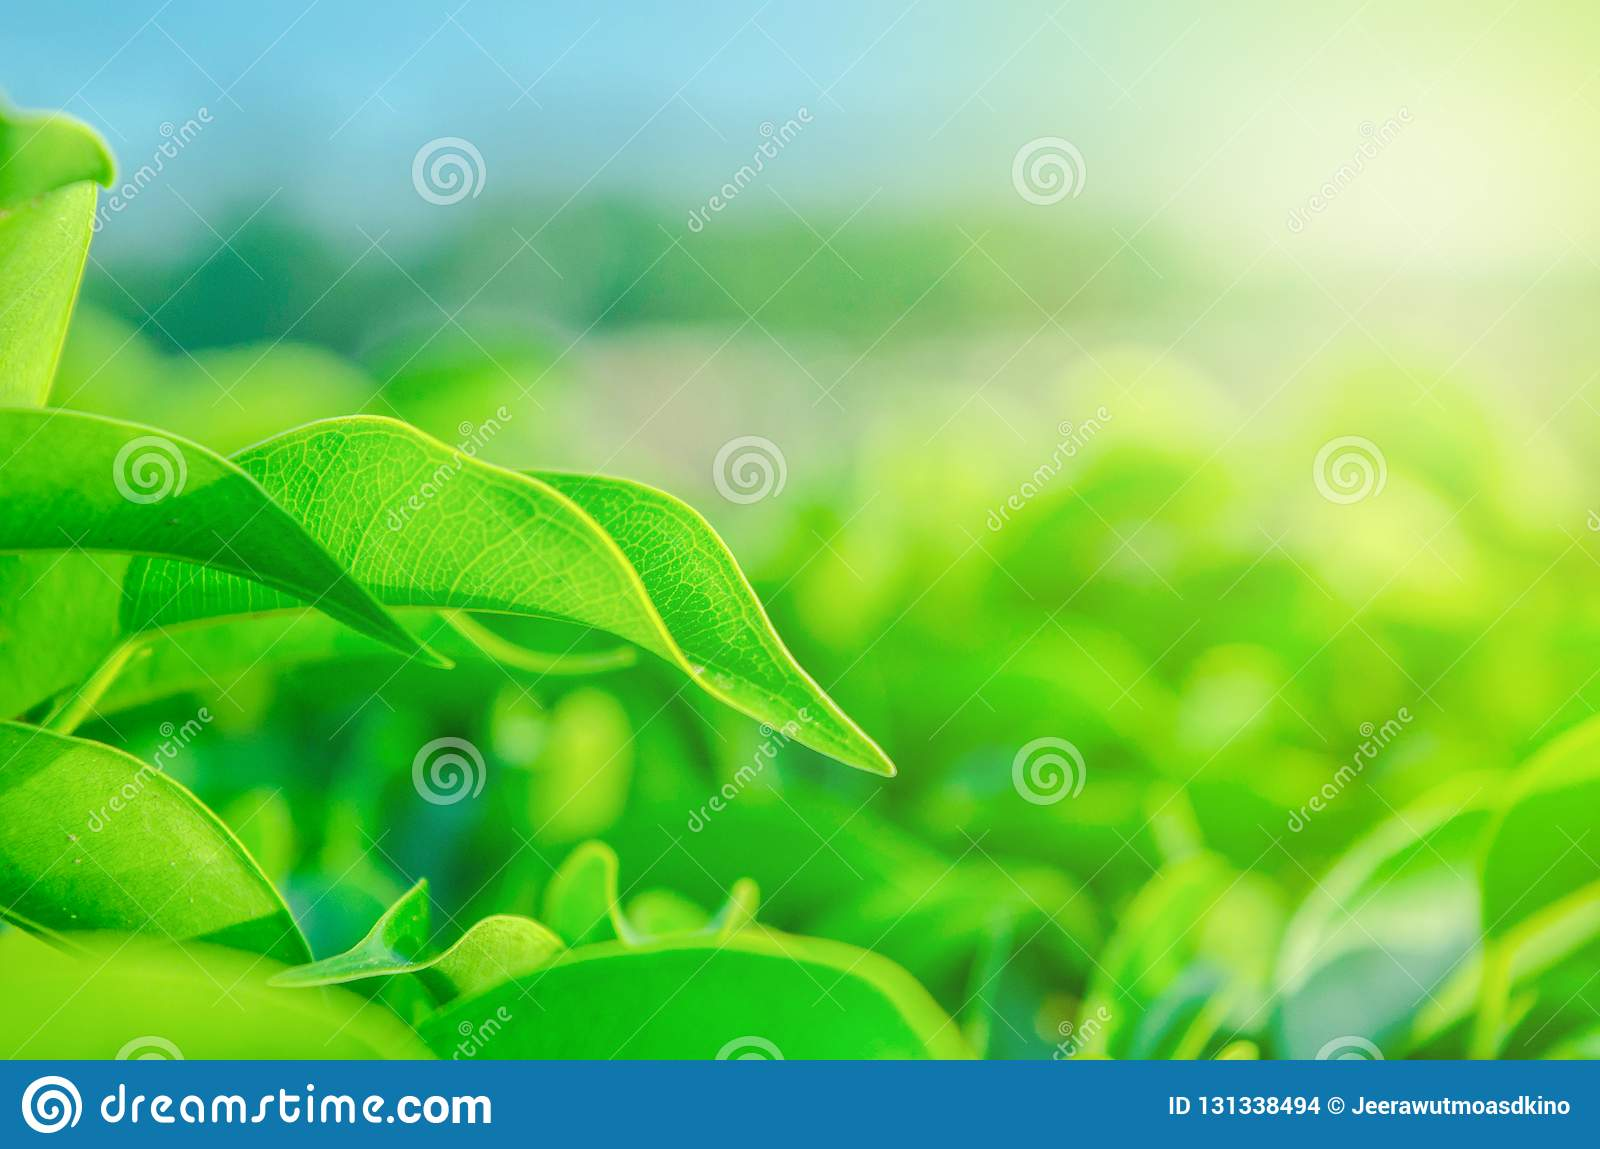 Nature Of Green Leaves For Wallpaper Or Background Stock